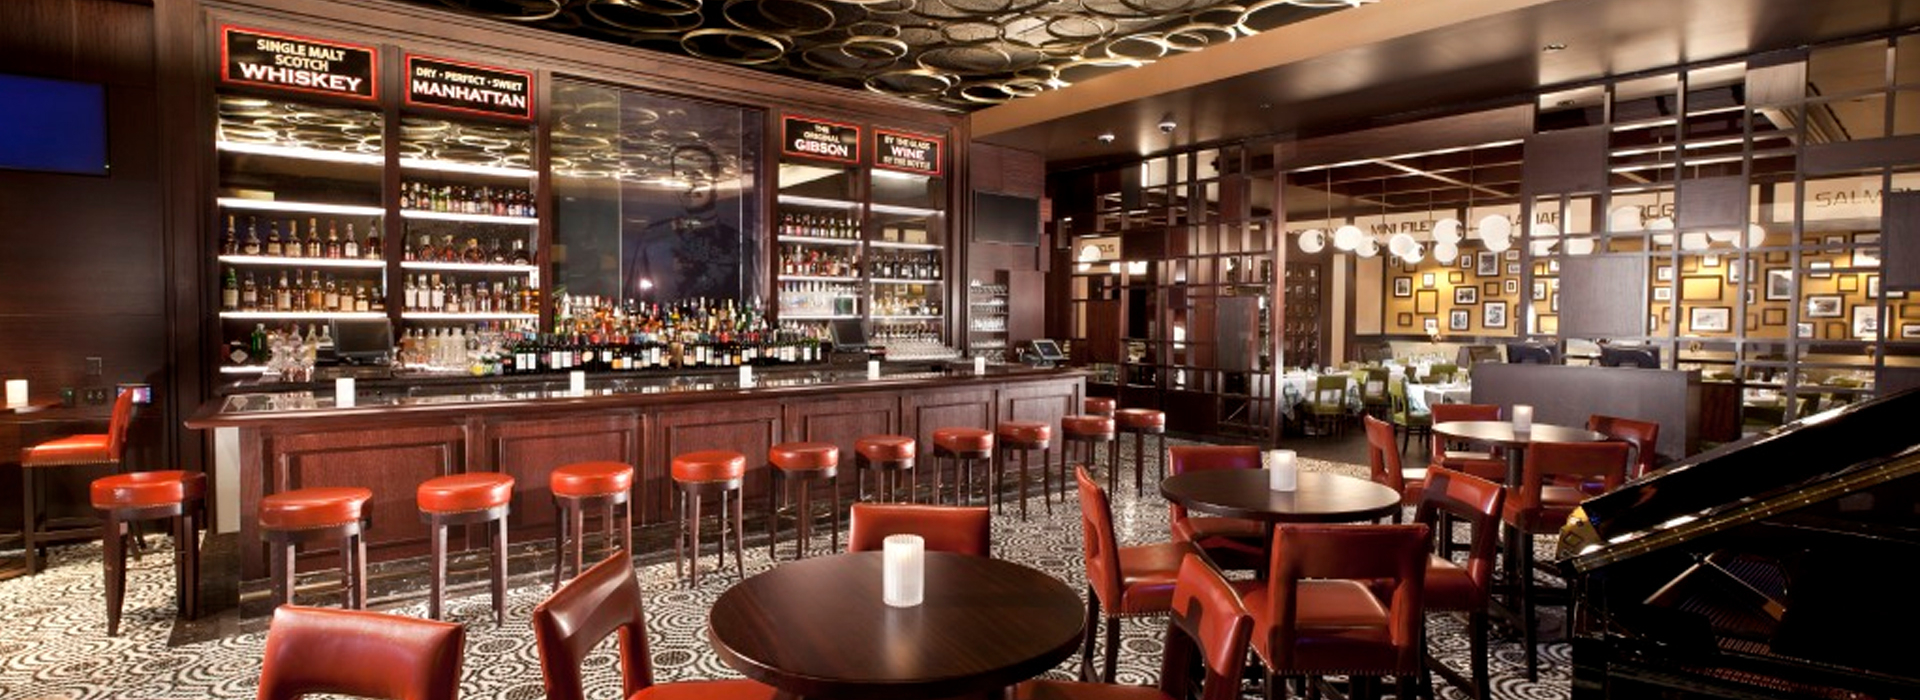 Rush Street properties have a wide variety of restaurant and bar options including proprietary concepts, as well as partnerships with well known brands.